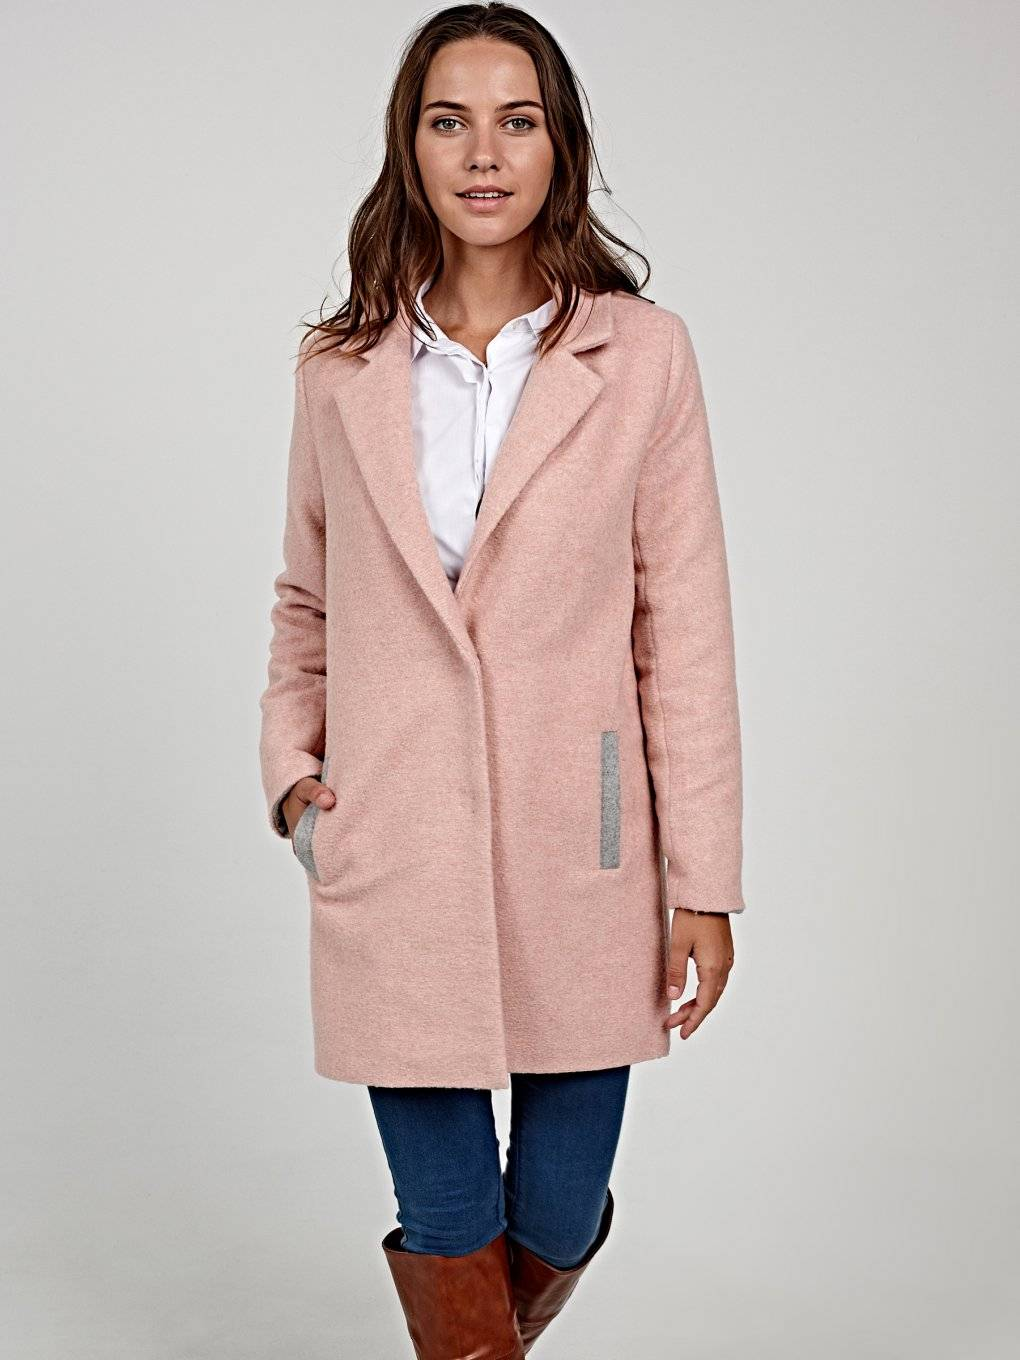 Plain coat with contrast details